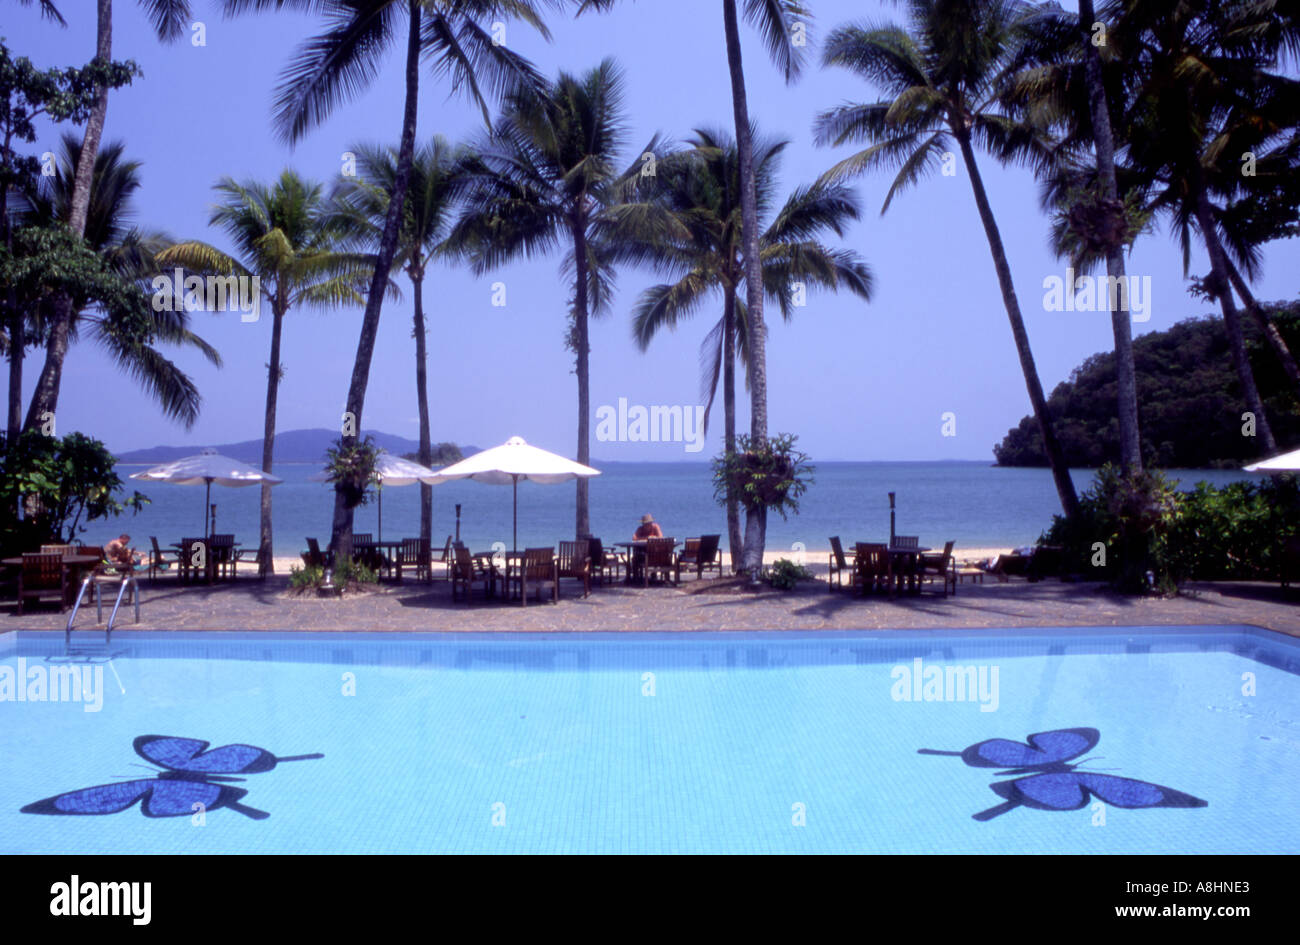 Dunk Island Moon Pool: The Pool At The Dunk Island Resort Off Mission Beach